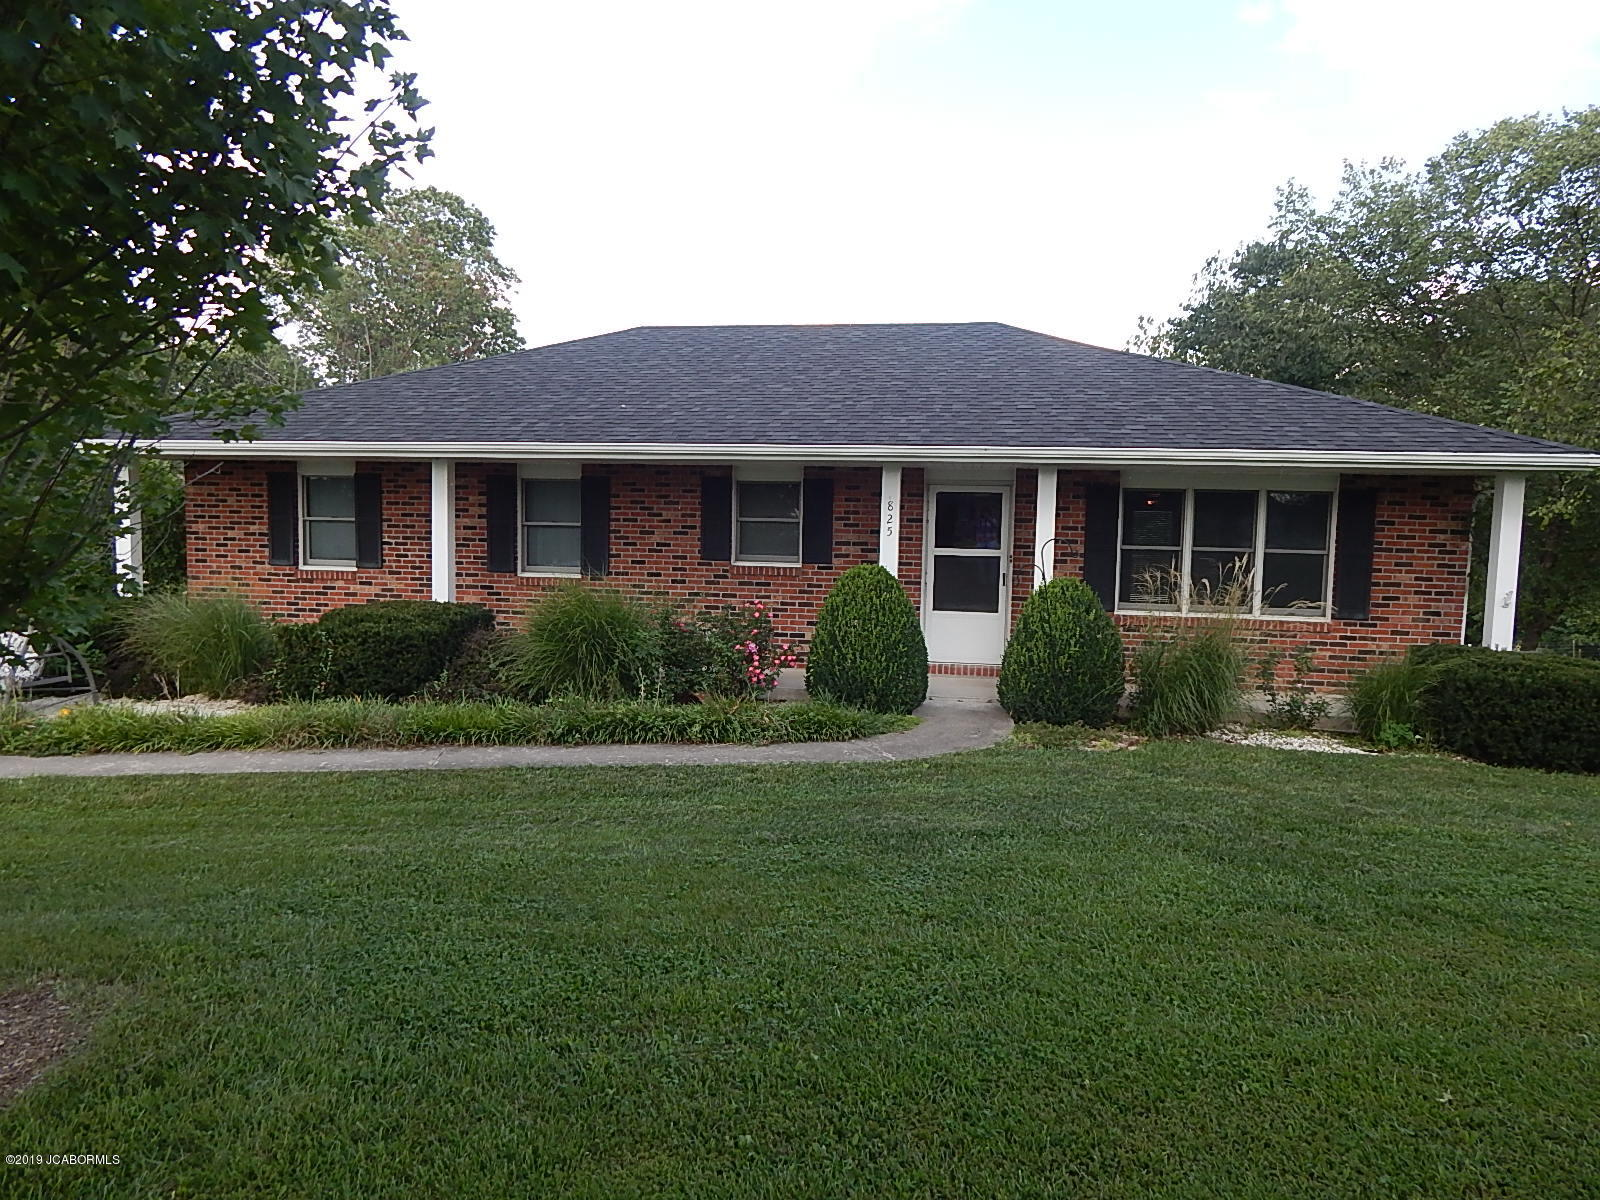 Photo of 825 County Rd 392 Holts Summit MO 65043